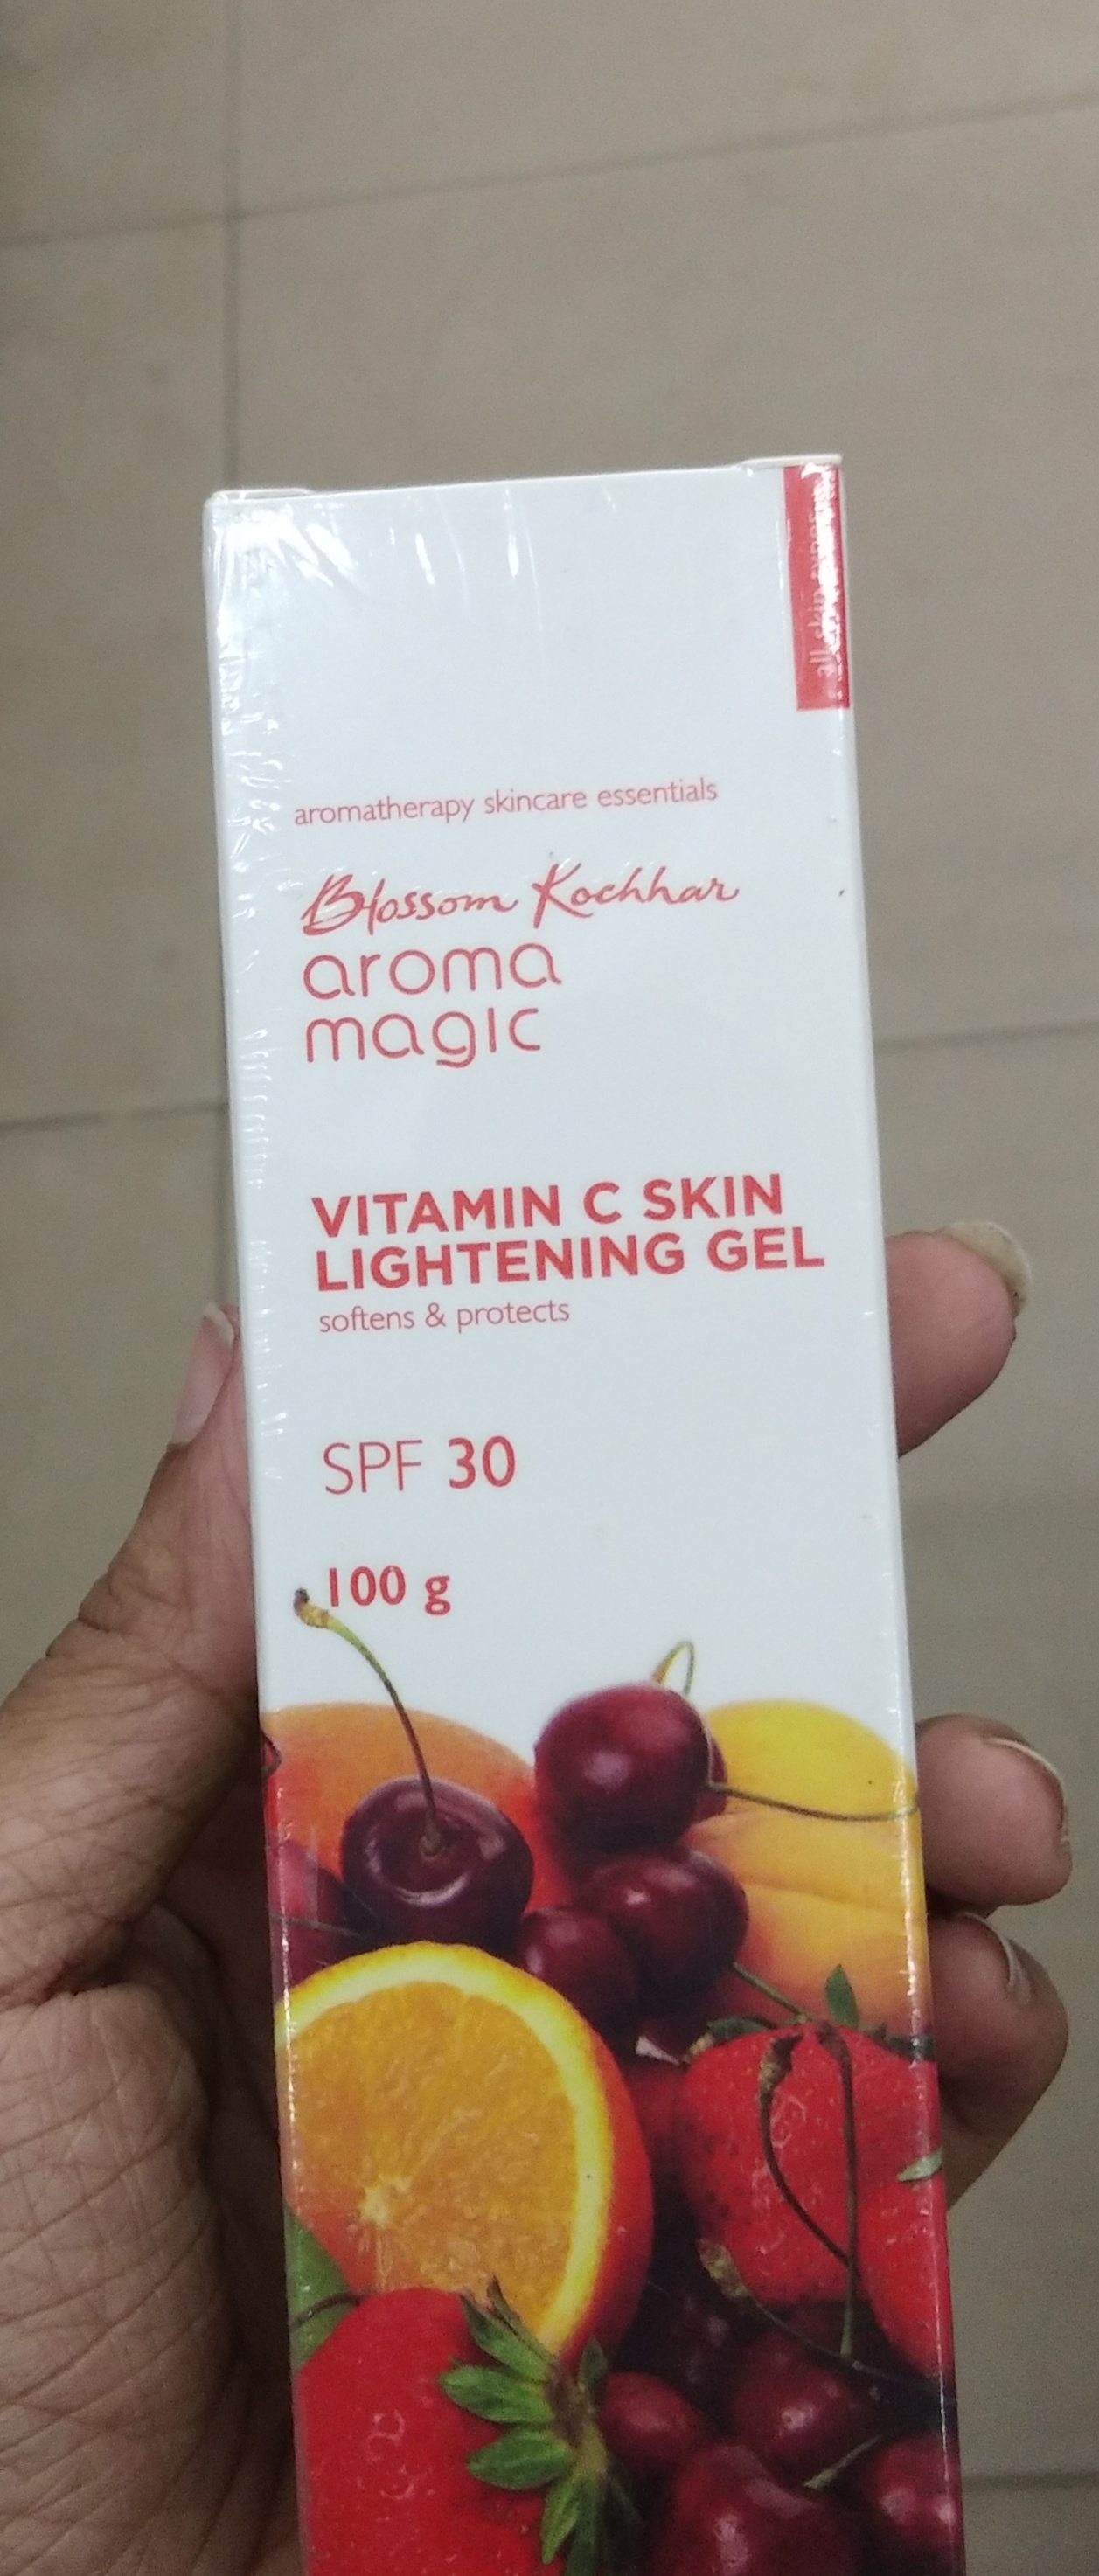 Aroma Magic Vitamin C Skin Lightening Gel SPF 30-Not satisfied-By Nasreen-2